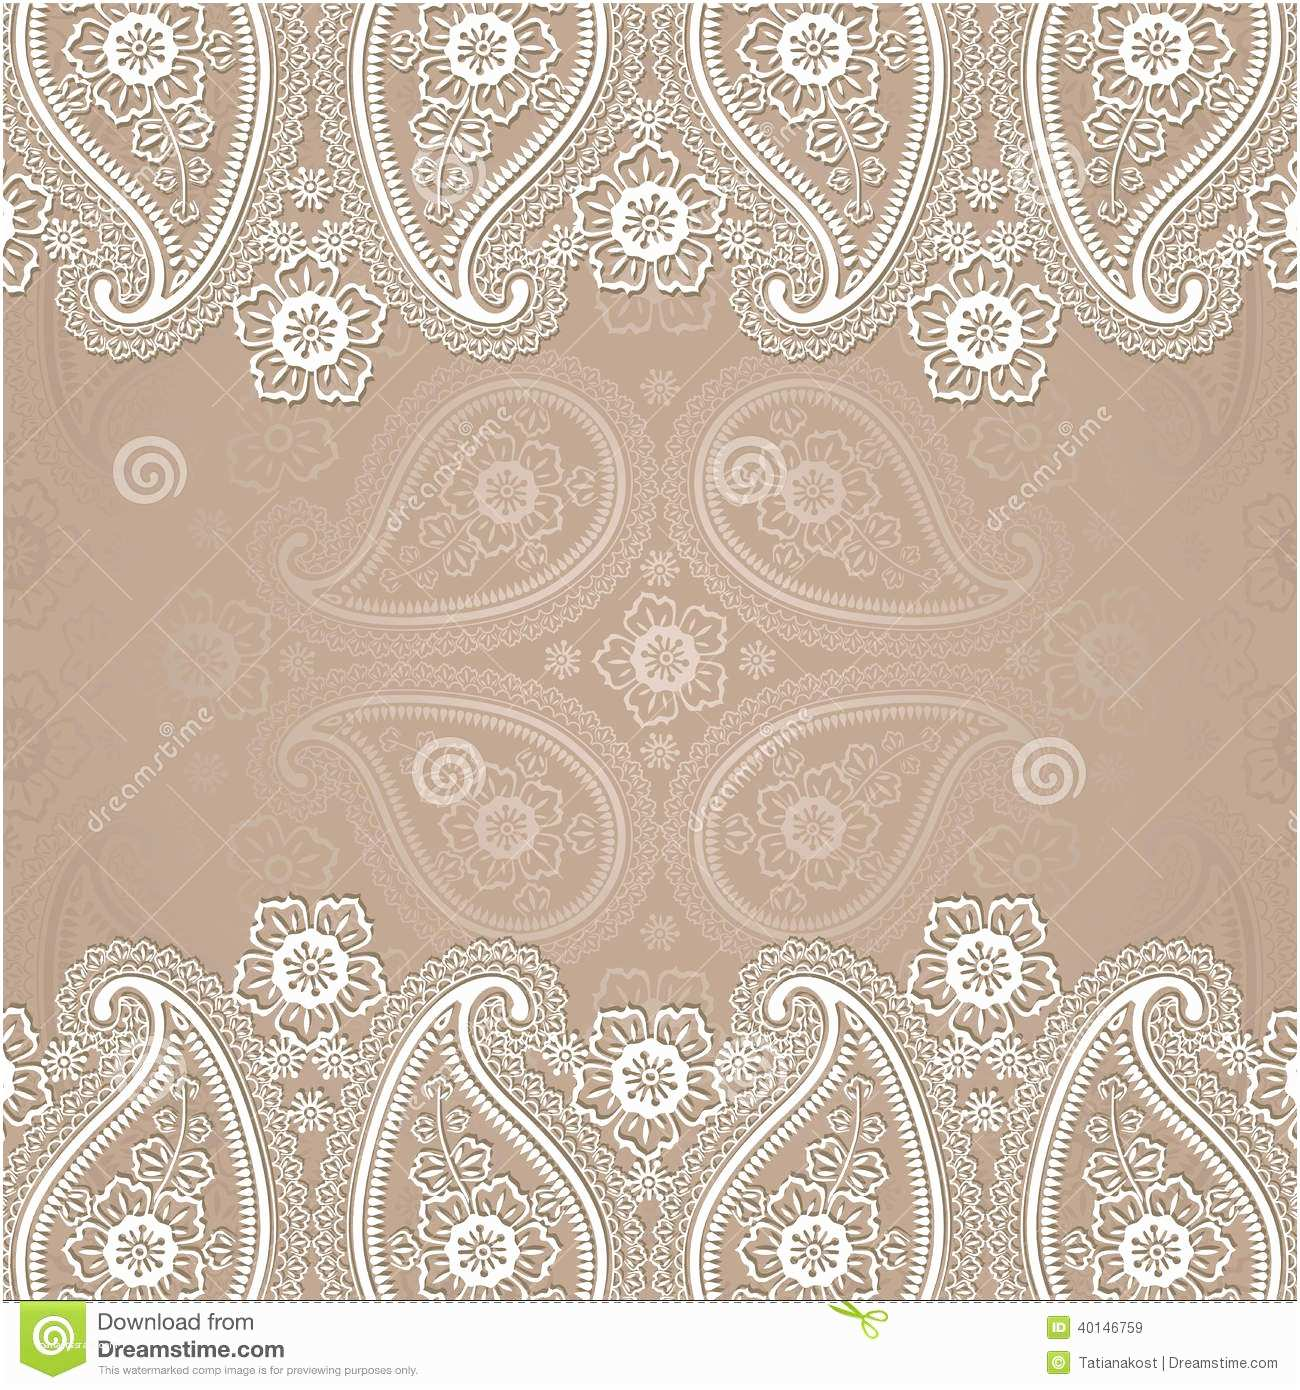 Paisley Wedding Invitation Template Paisley Border Lace Design Template Stock Vector